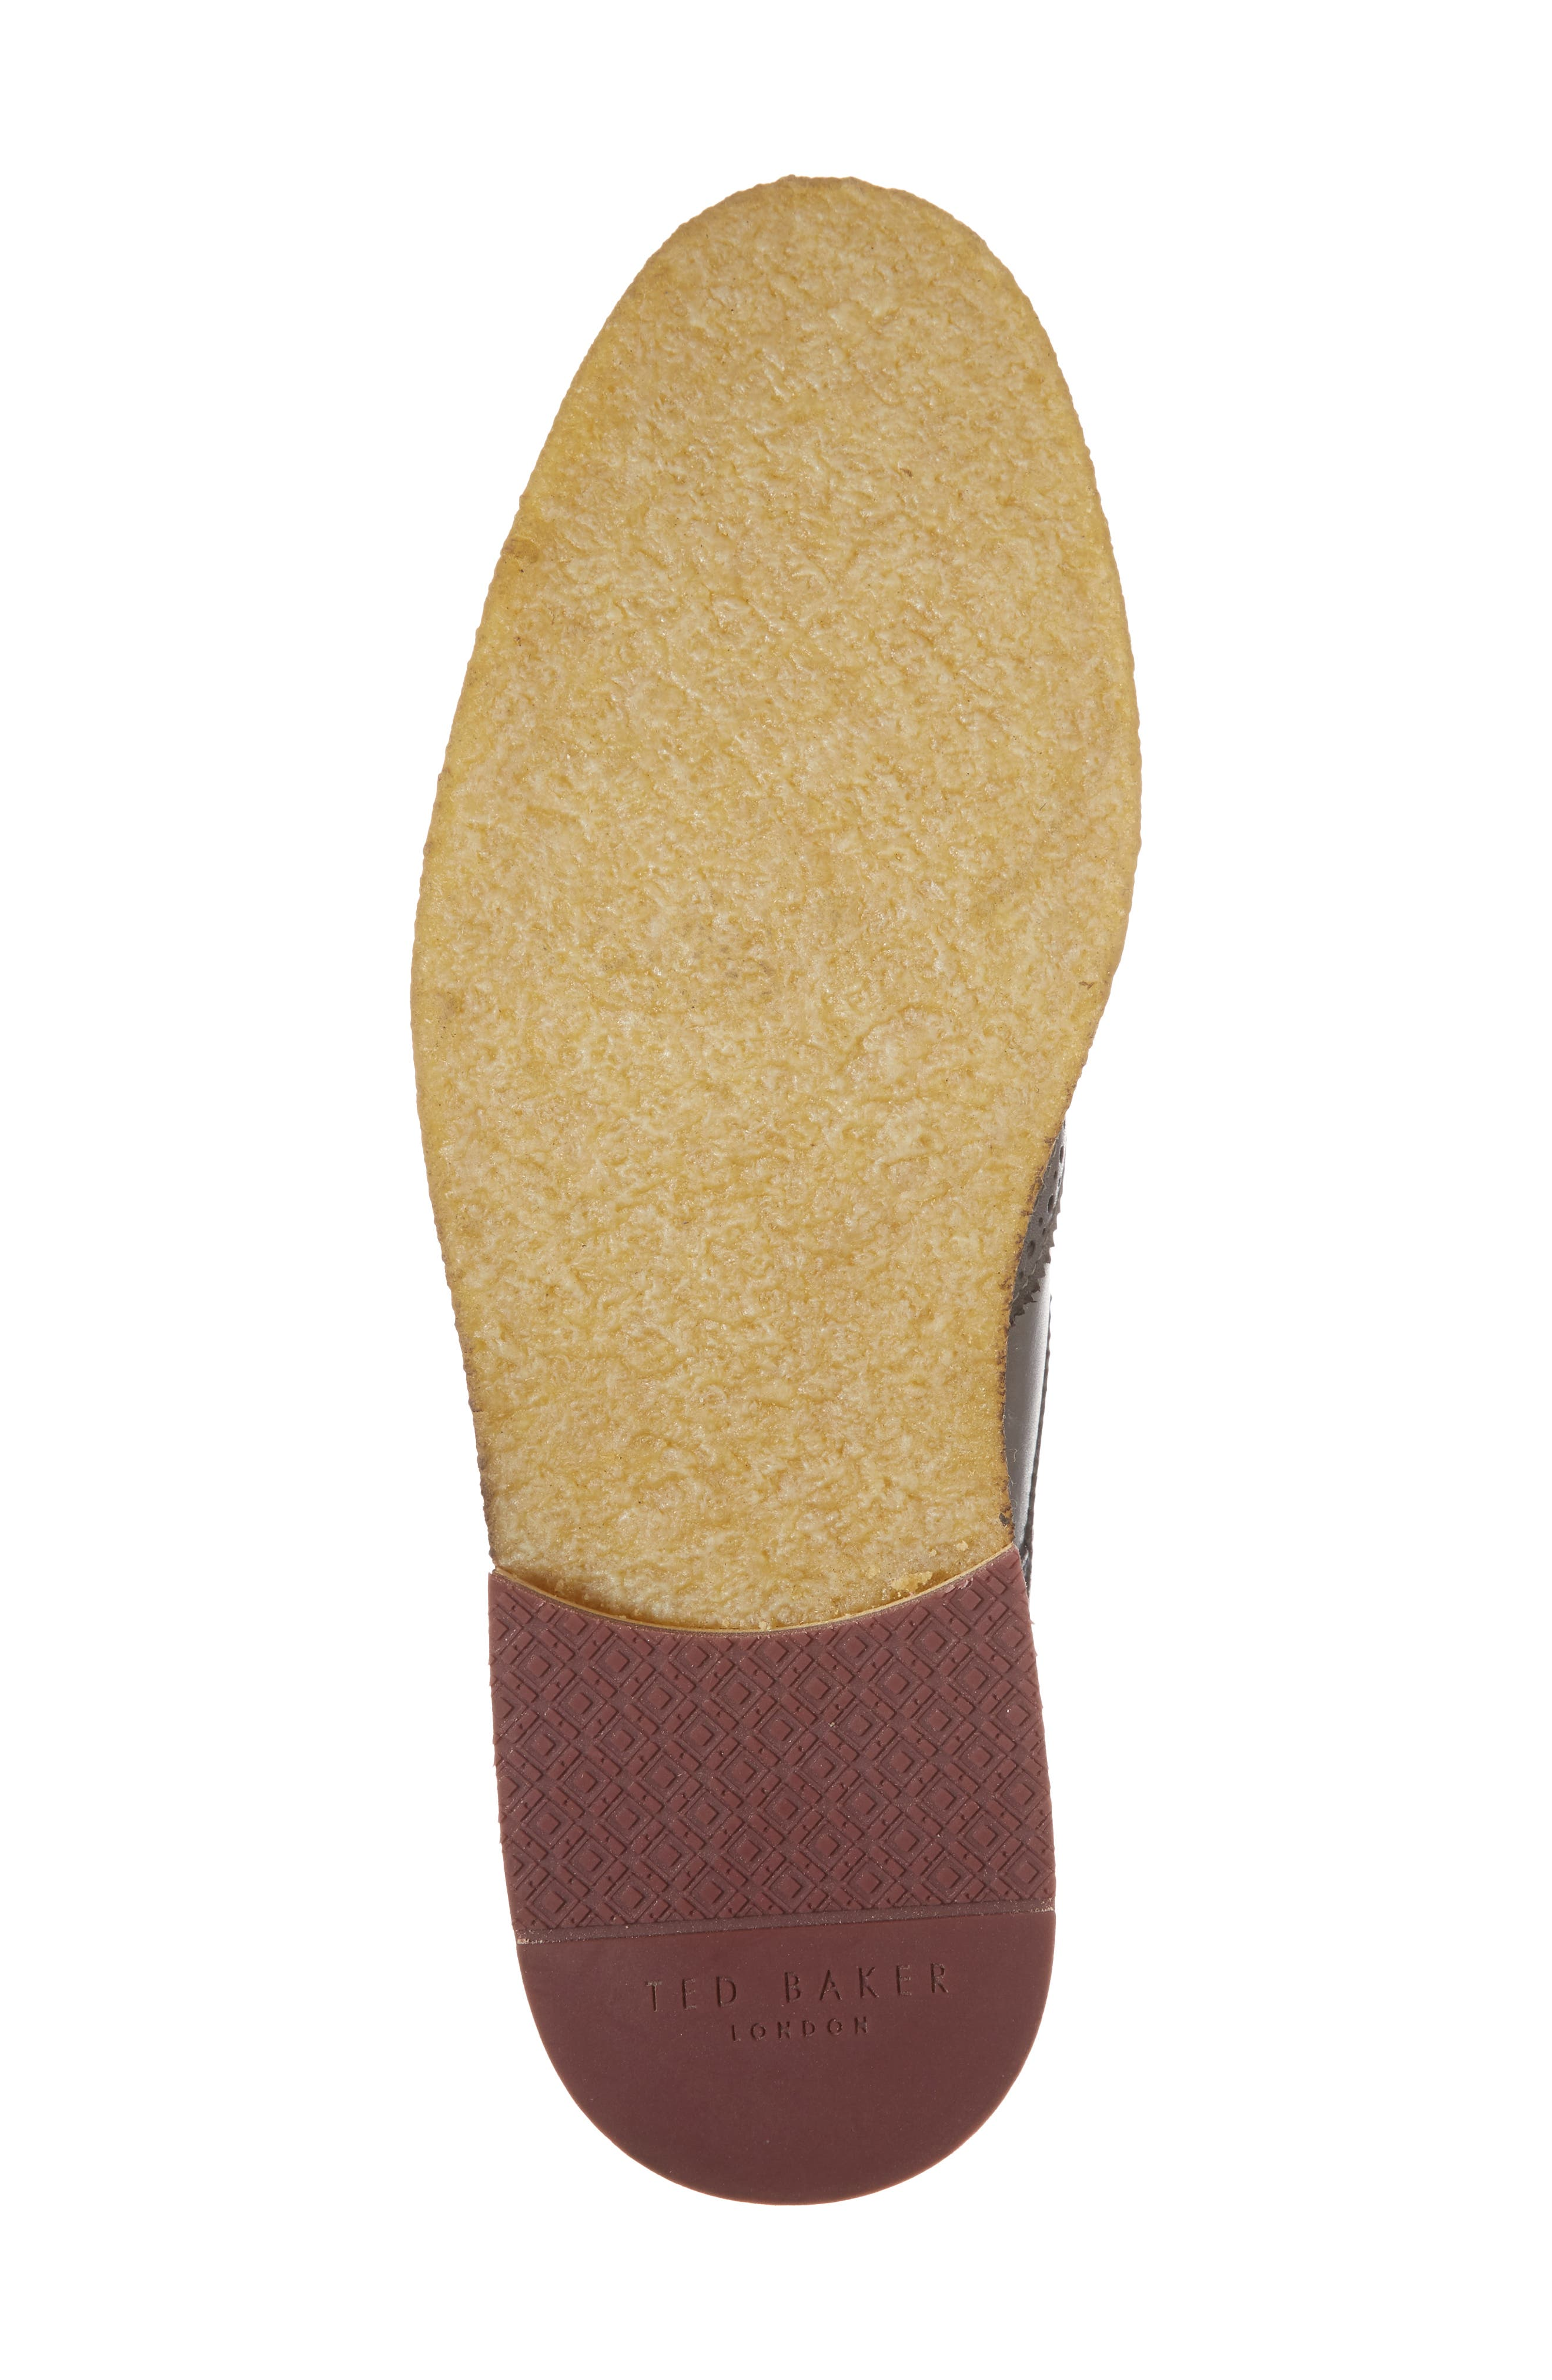 TED BAKER LONDON,                             Prycce Wingtip Derby,                             Alternate thumbnail 6, color,                             031